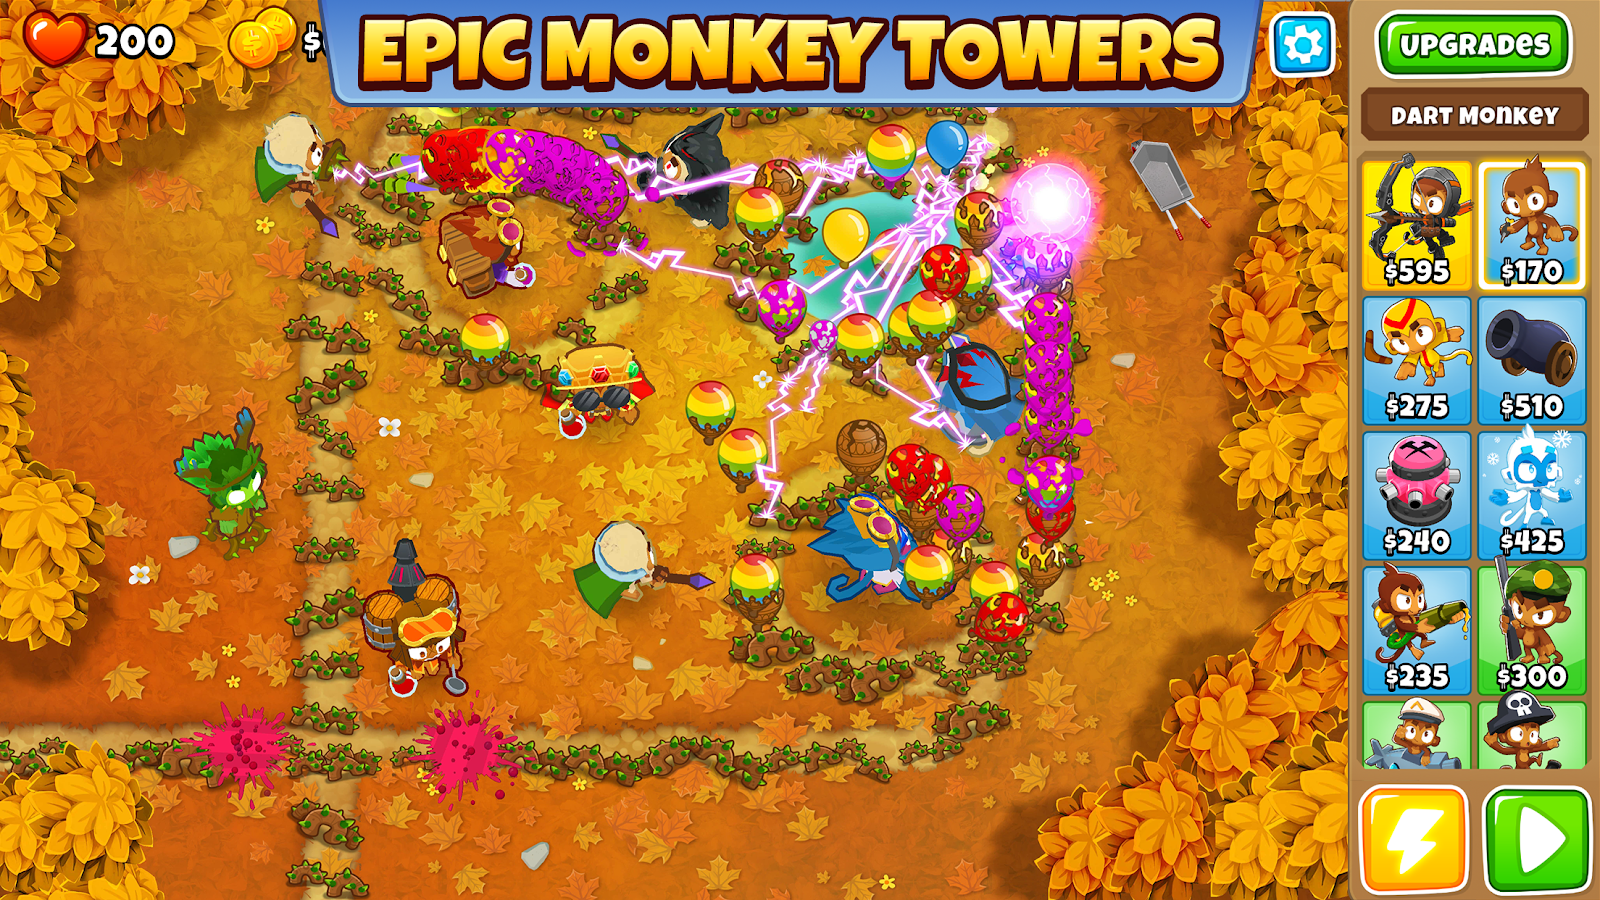 bloons td 5 hacked apk 3.18